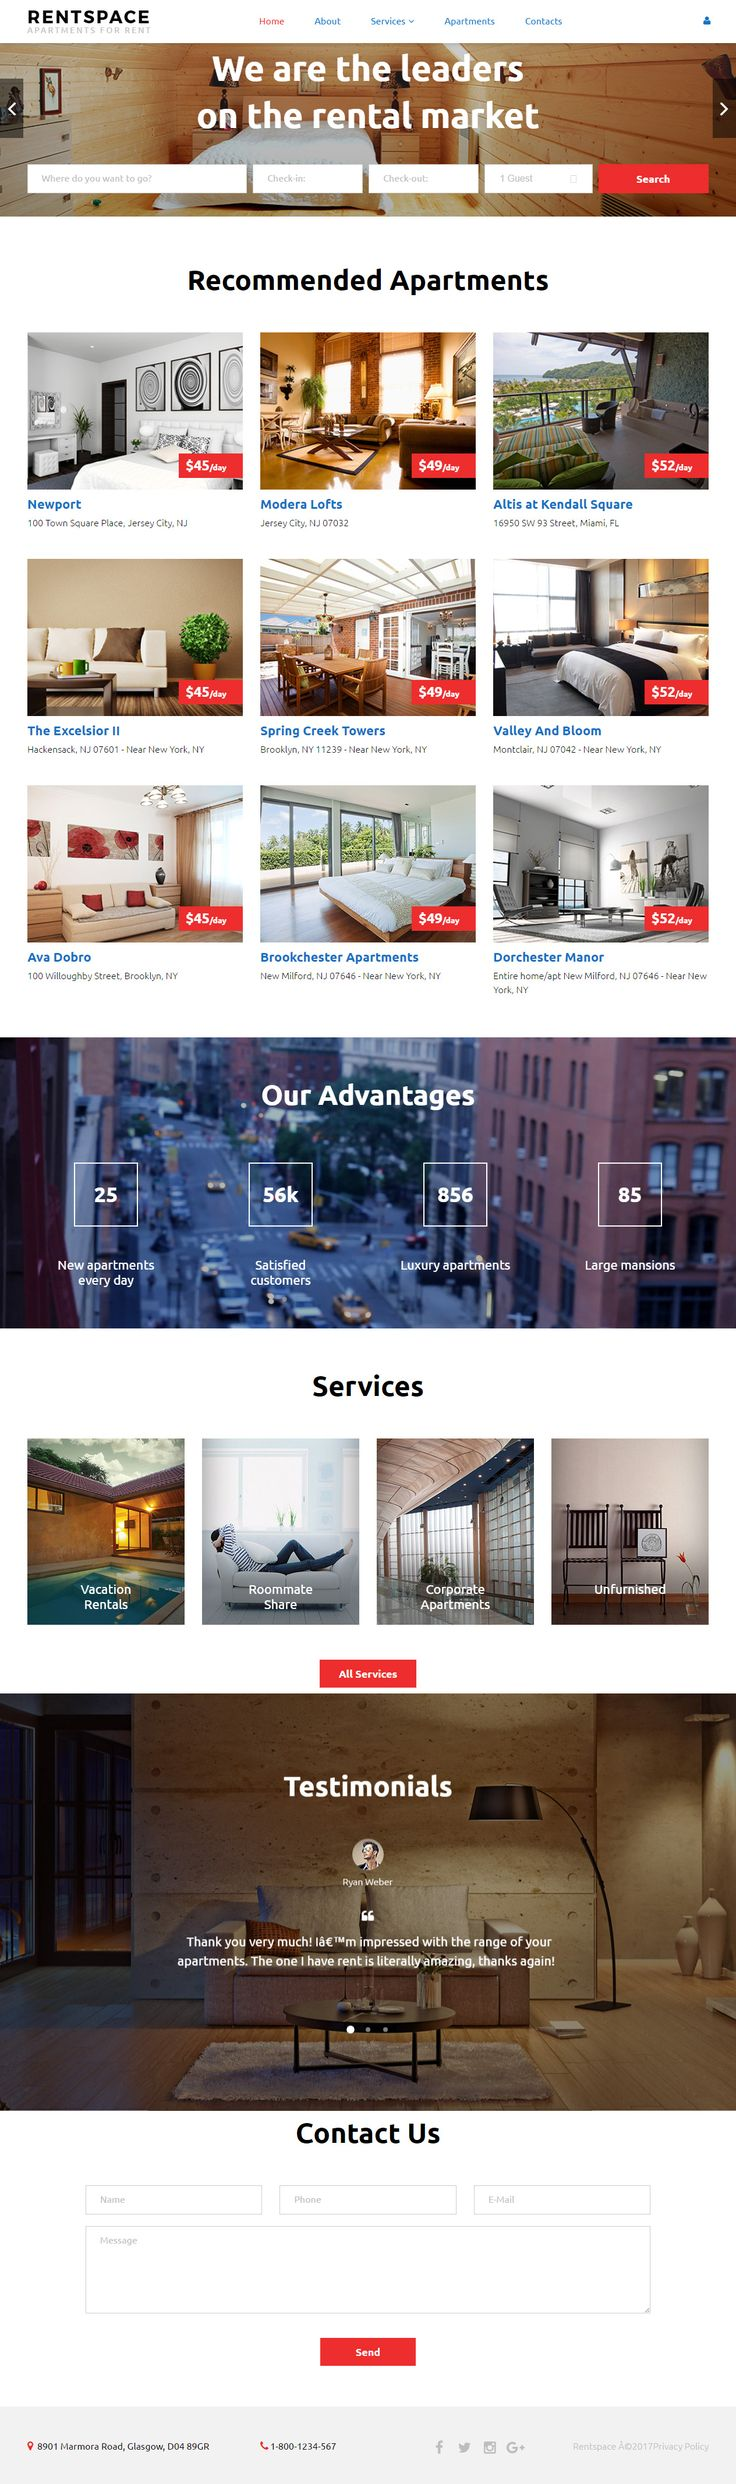 Background image 100 responsive - Rentspace Is Premium Full Responsive Parallaxhtml5template If You Like This Videobackgroundtemplate Visit Our